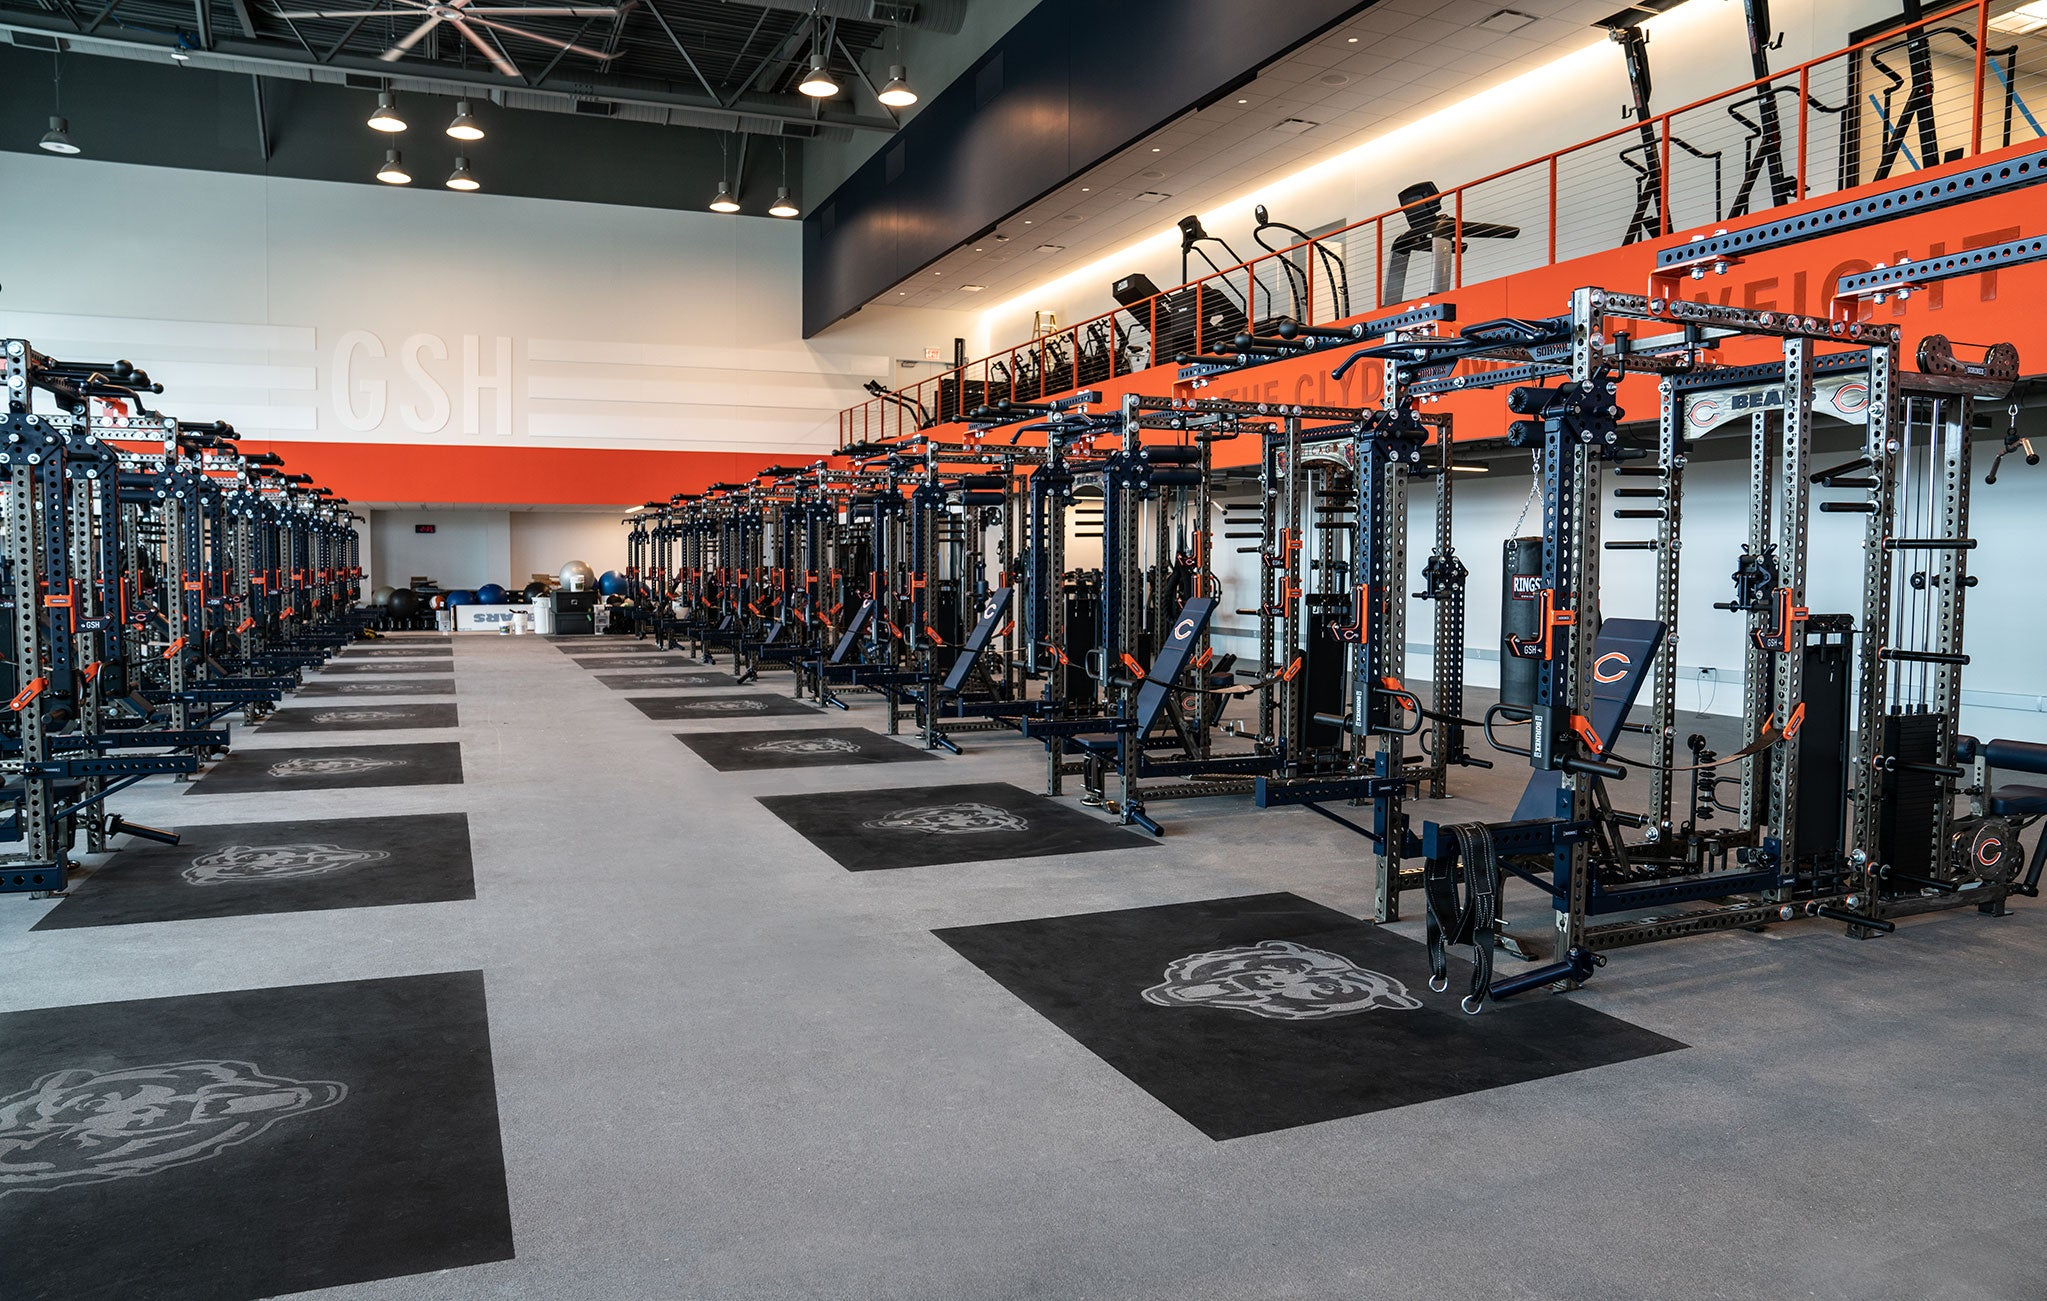 Chicago Bears strength training